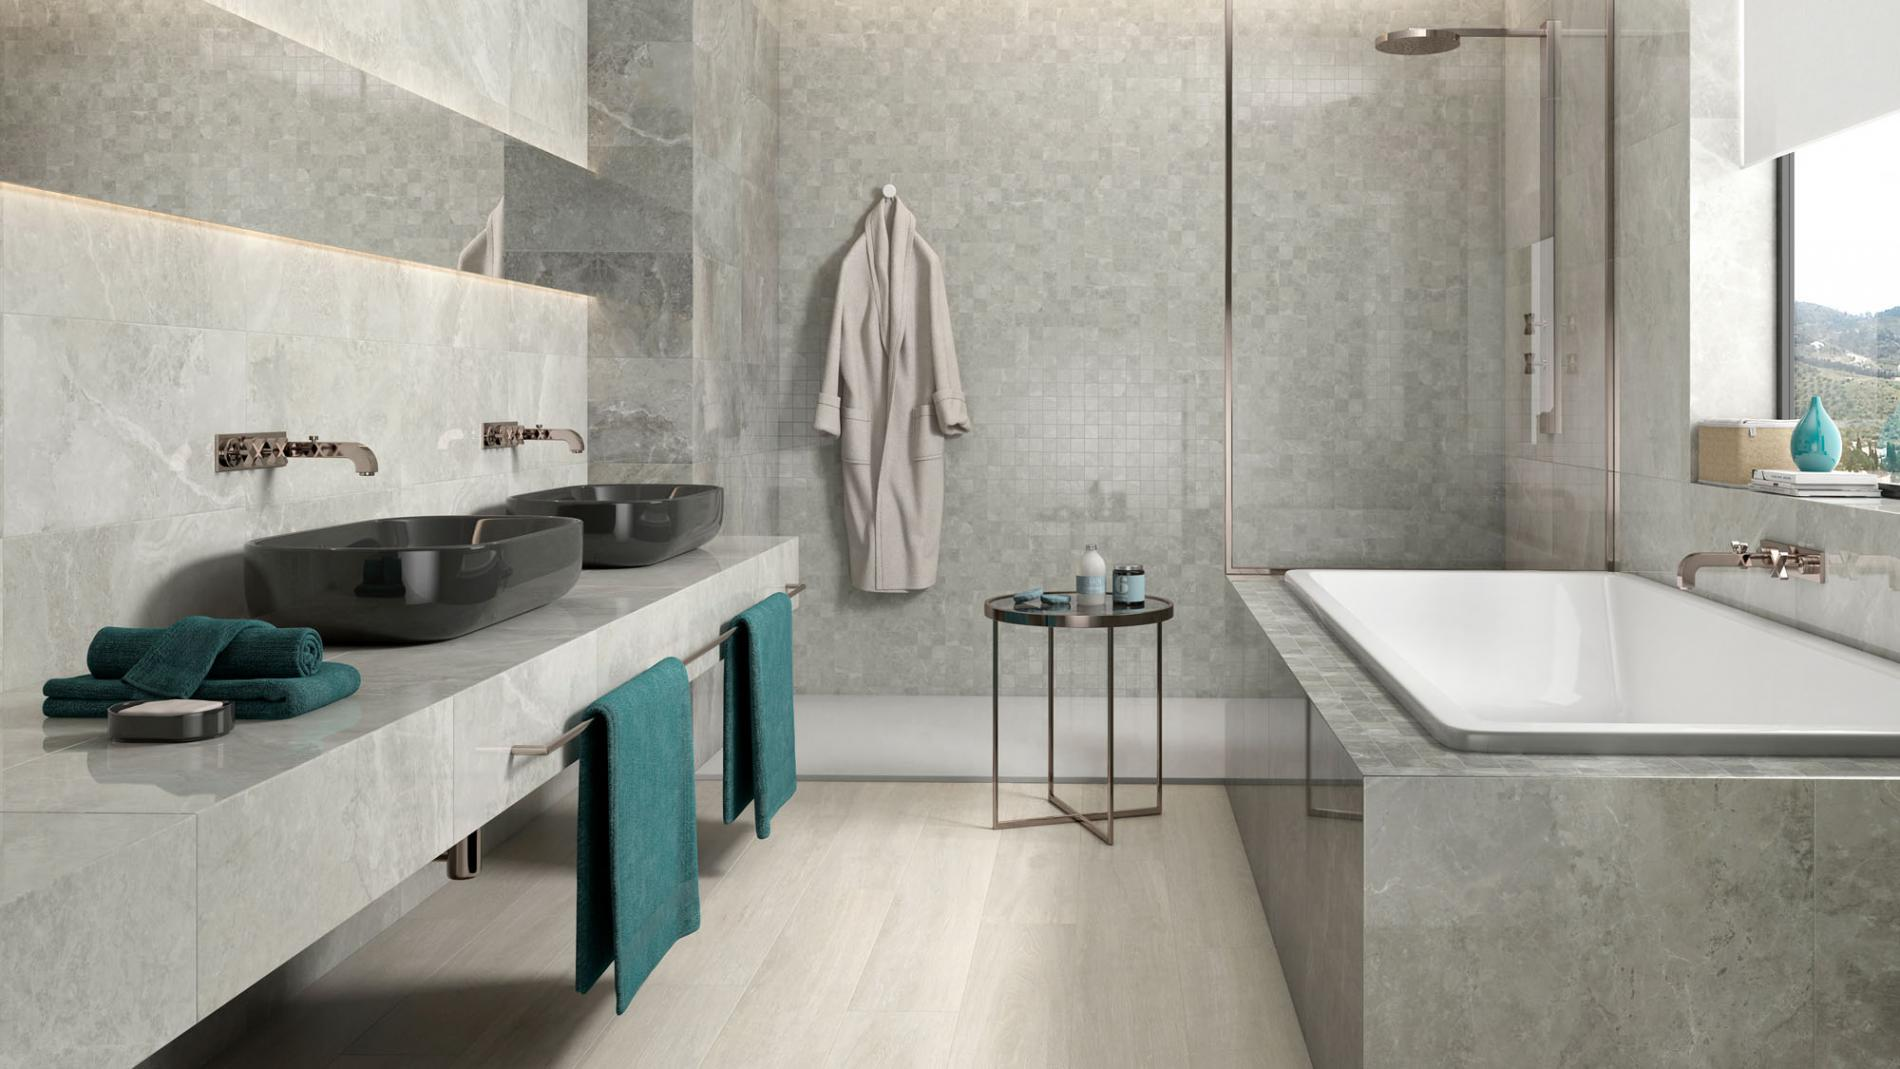 pam1900x175 Tiles dublin waterloo bathrooms commercial contracts ireland supply and fit luxury.jpg